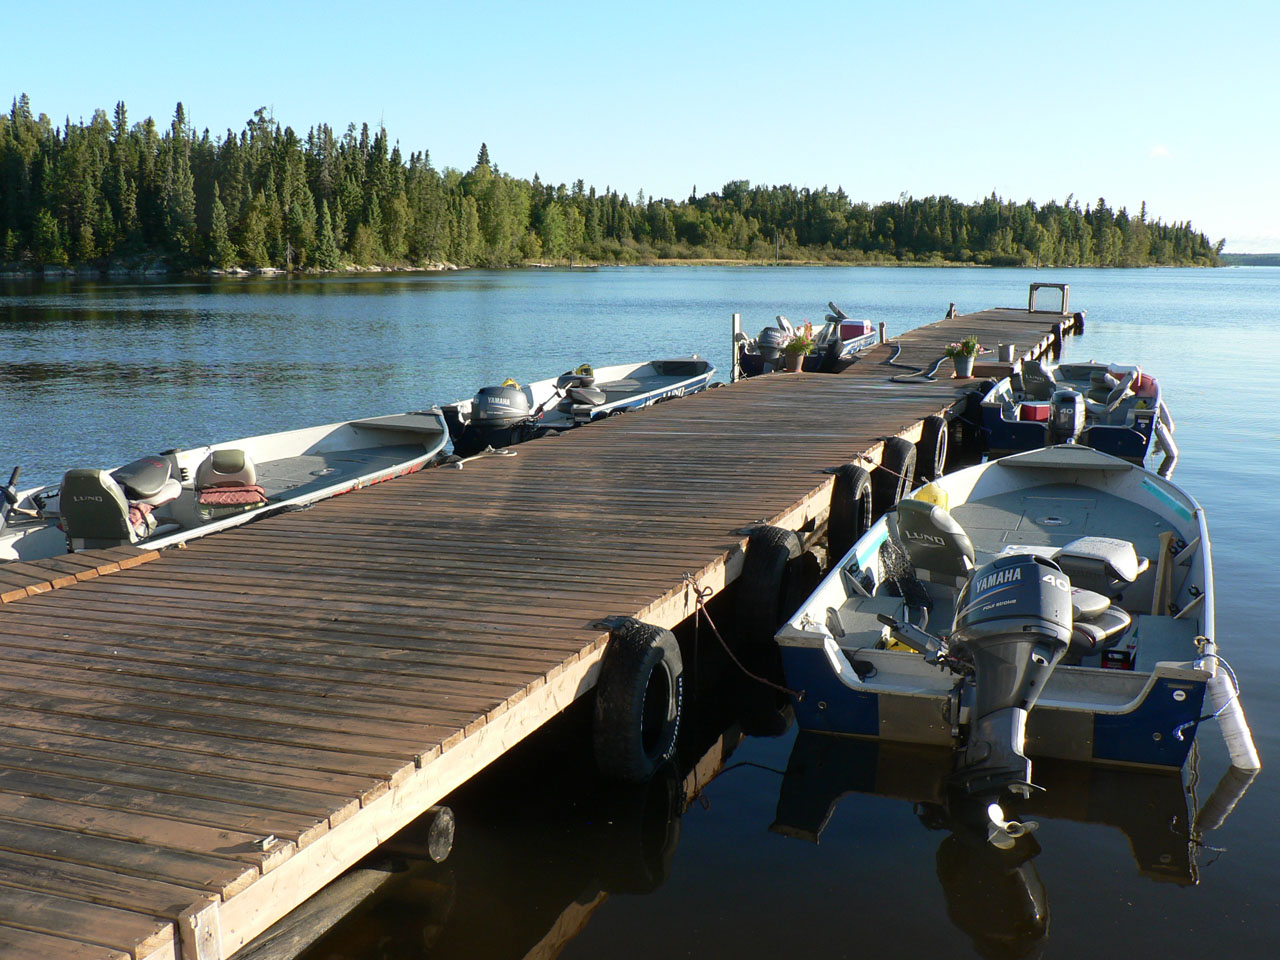 View at the Docks of the Lake